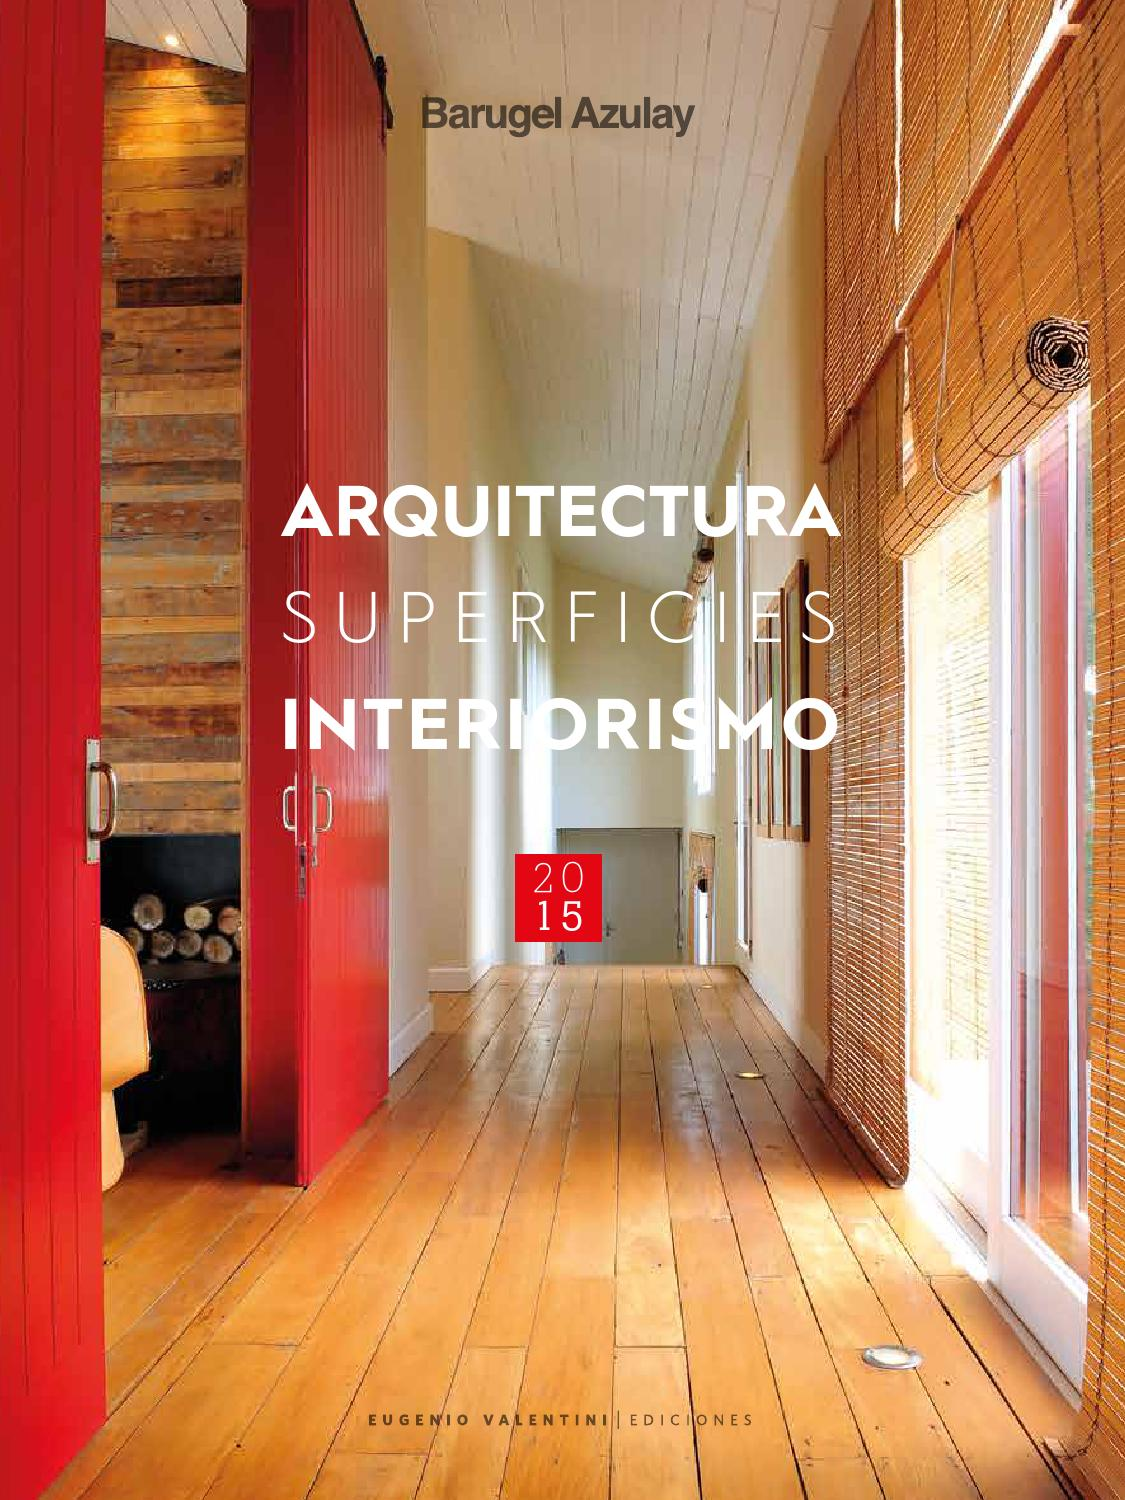 Arquitectura Superficies Interiorismo 2015 by Un amplio